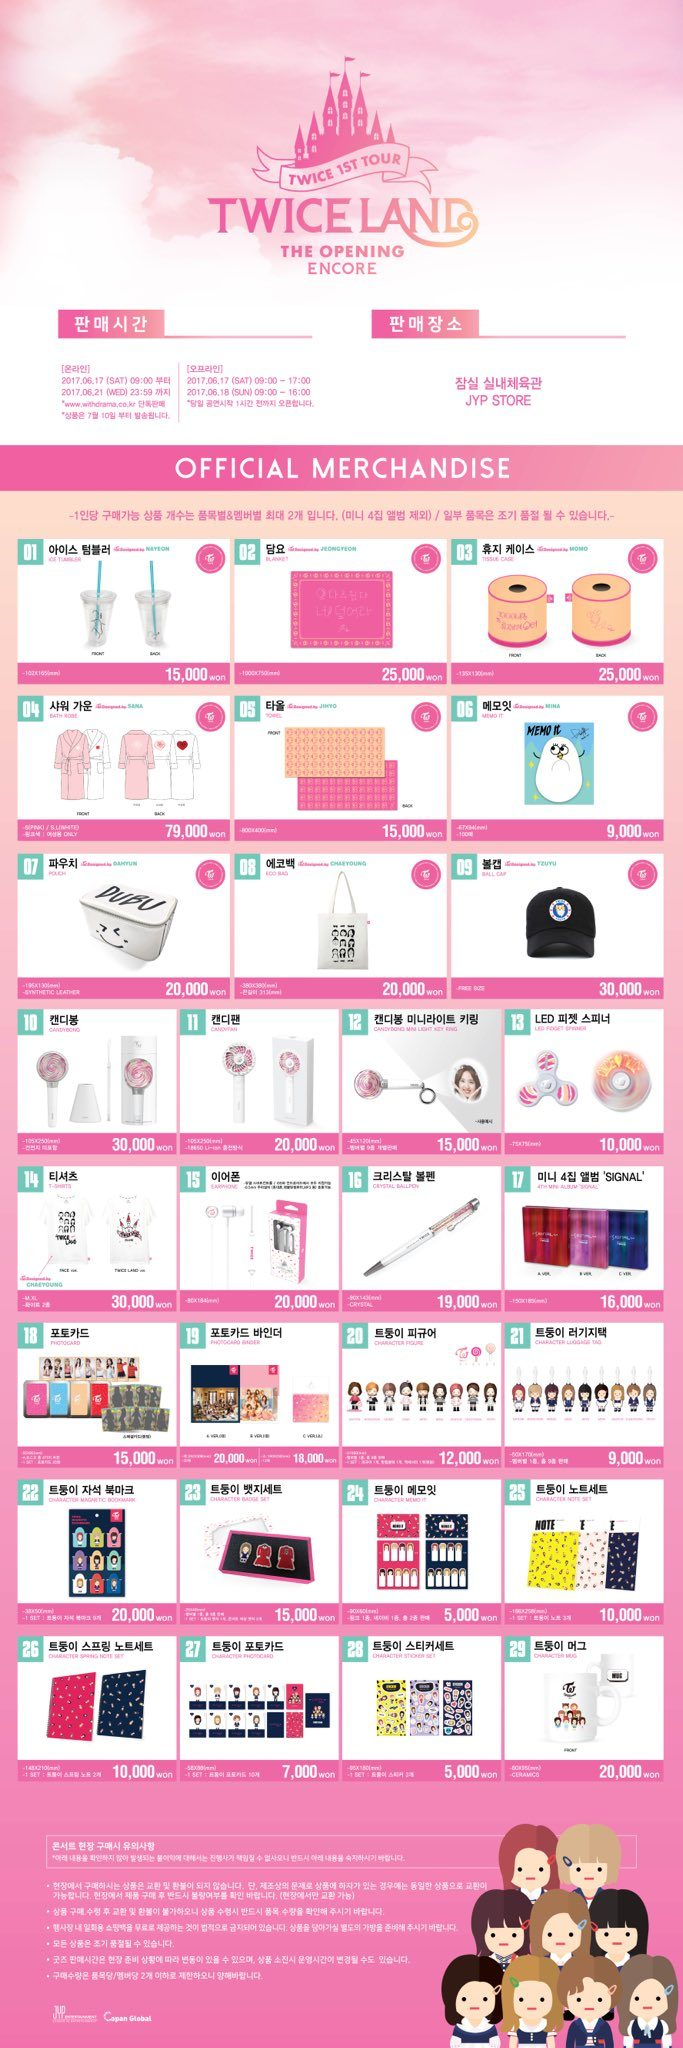 The Ultimate Guide To TWICE's Official Merchandise Since